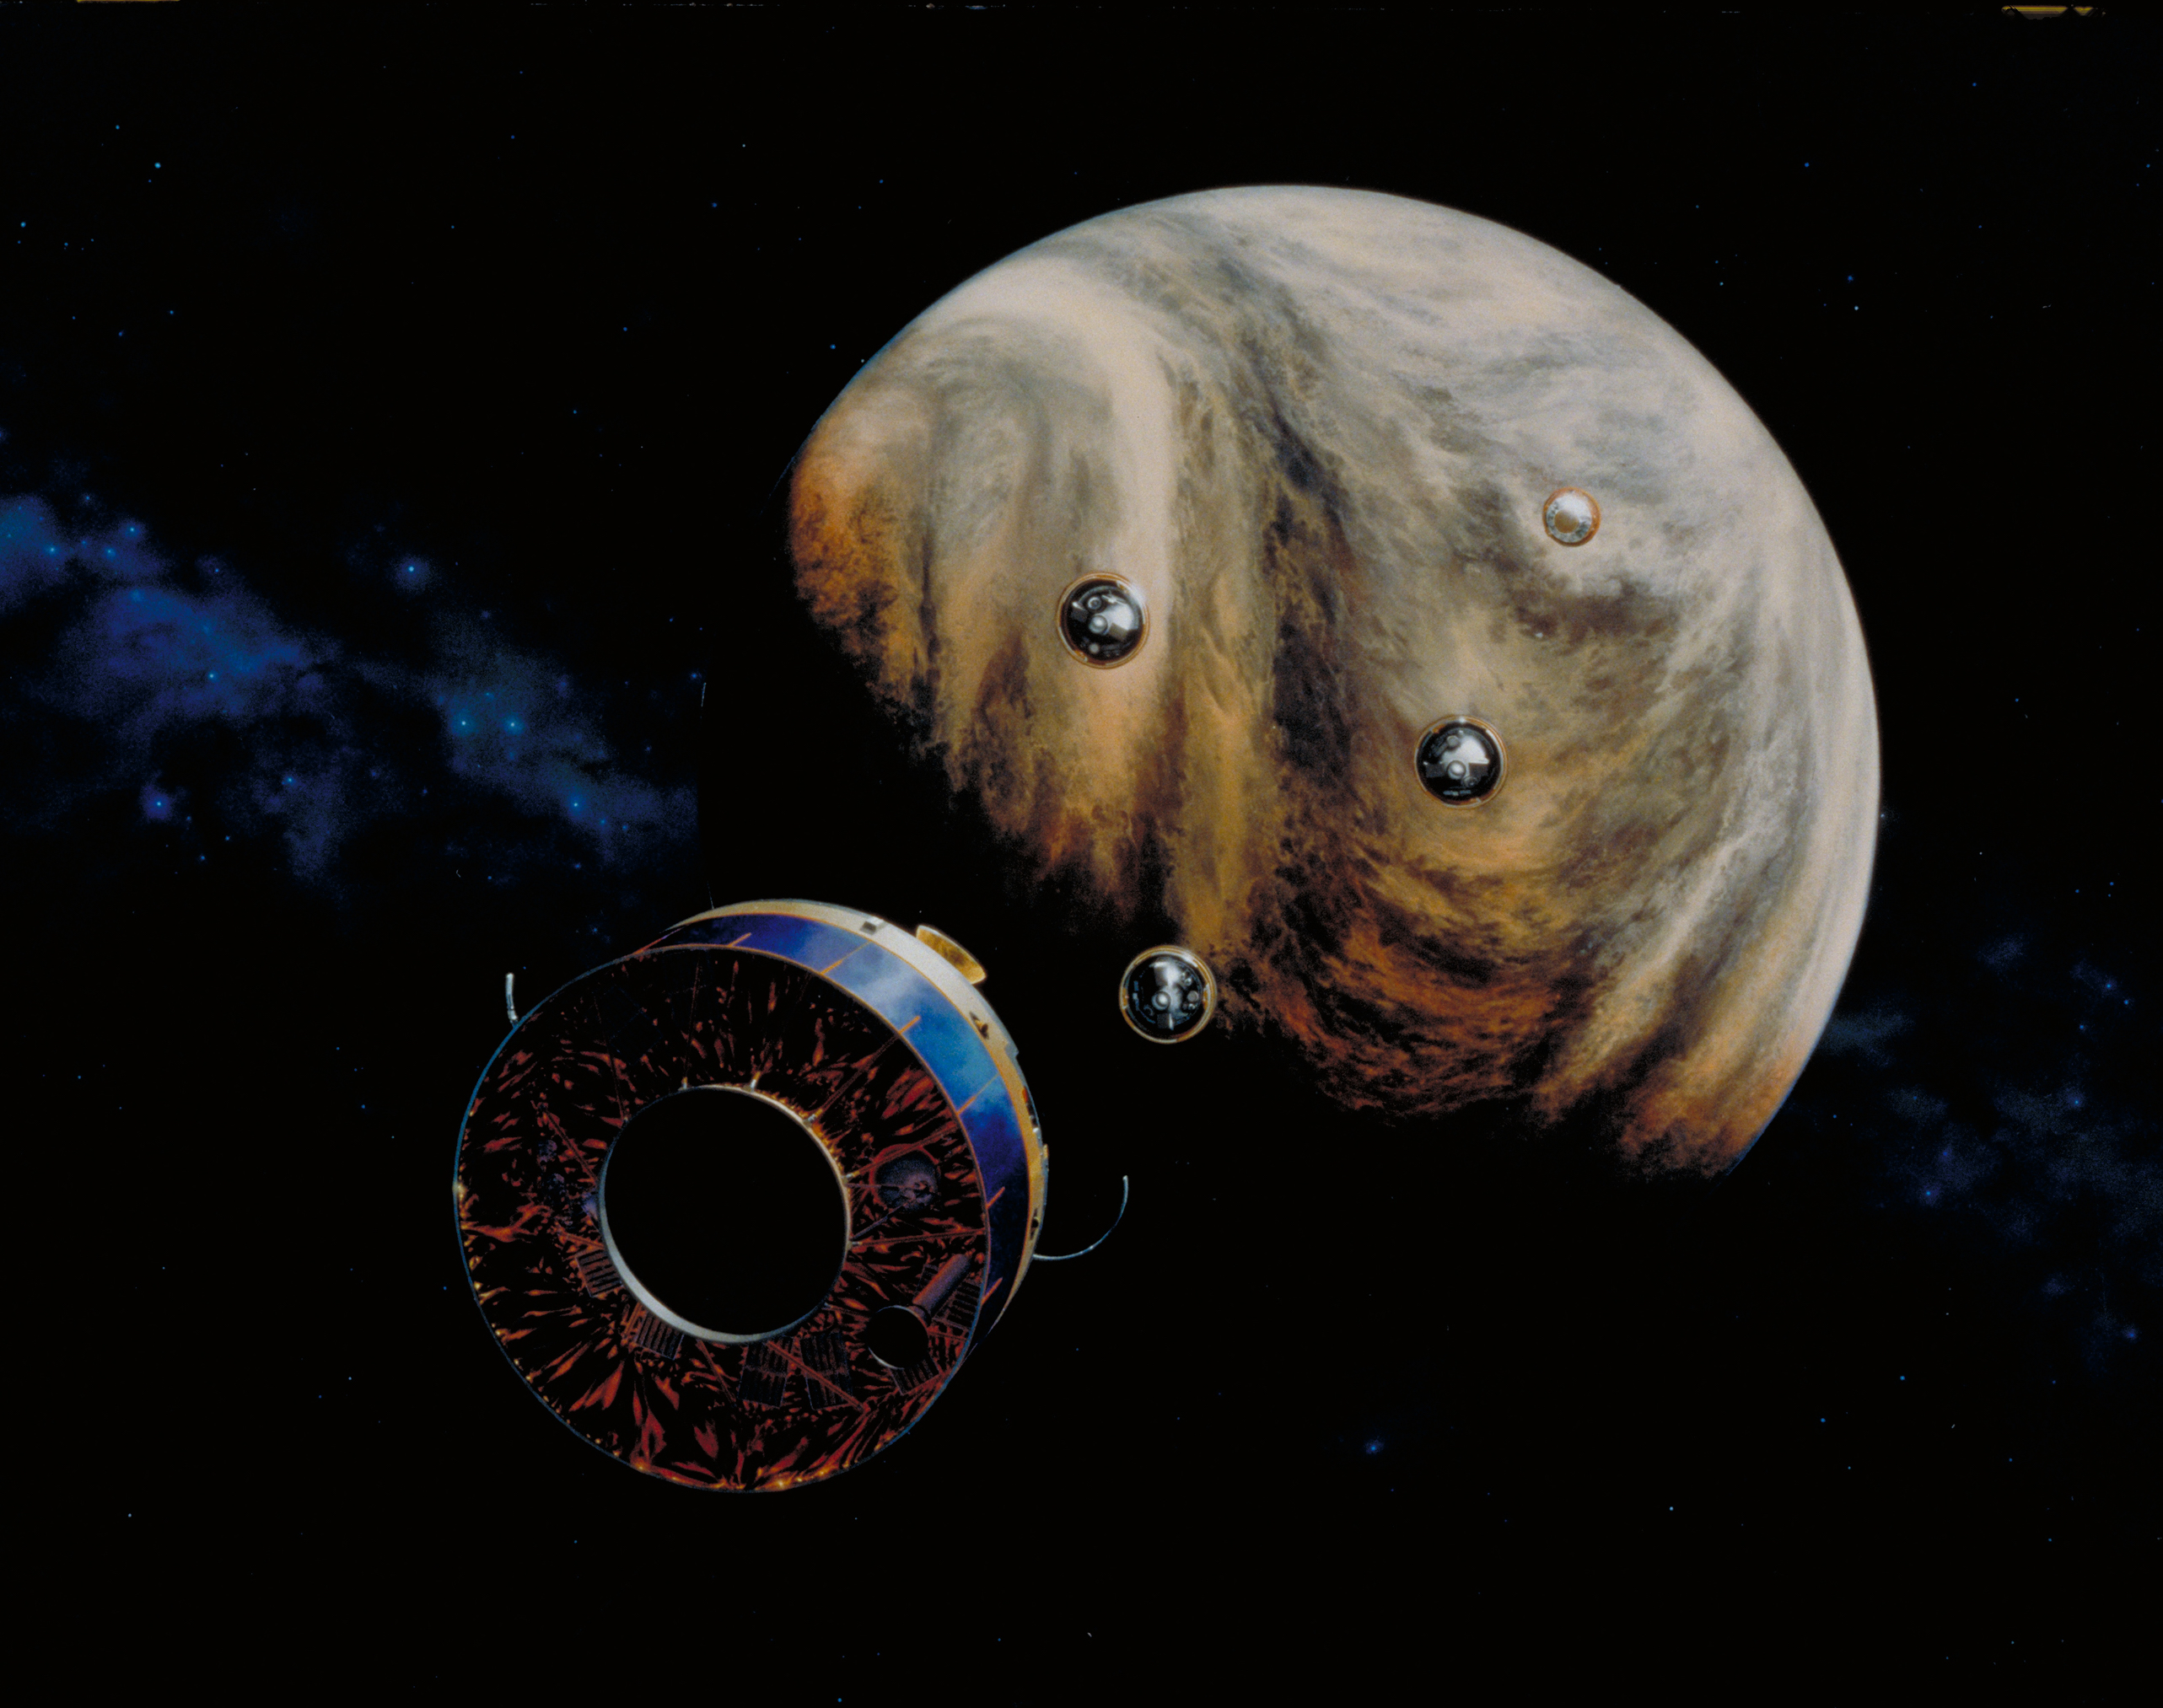 40 Years Ago, Pioneer Venus Multiprobe Launched to Study the Cloud-Shrouded Planet Venus